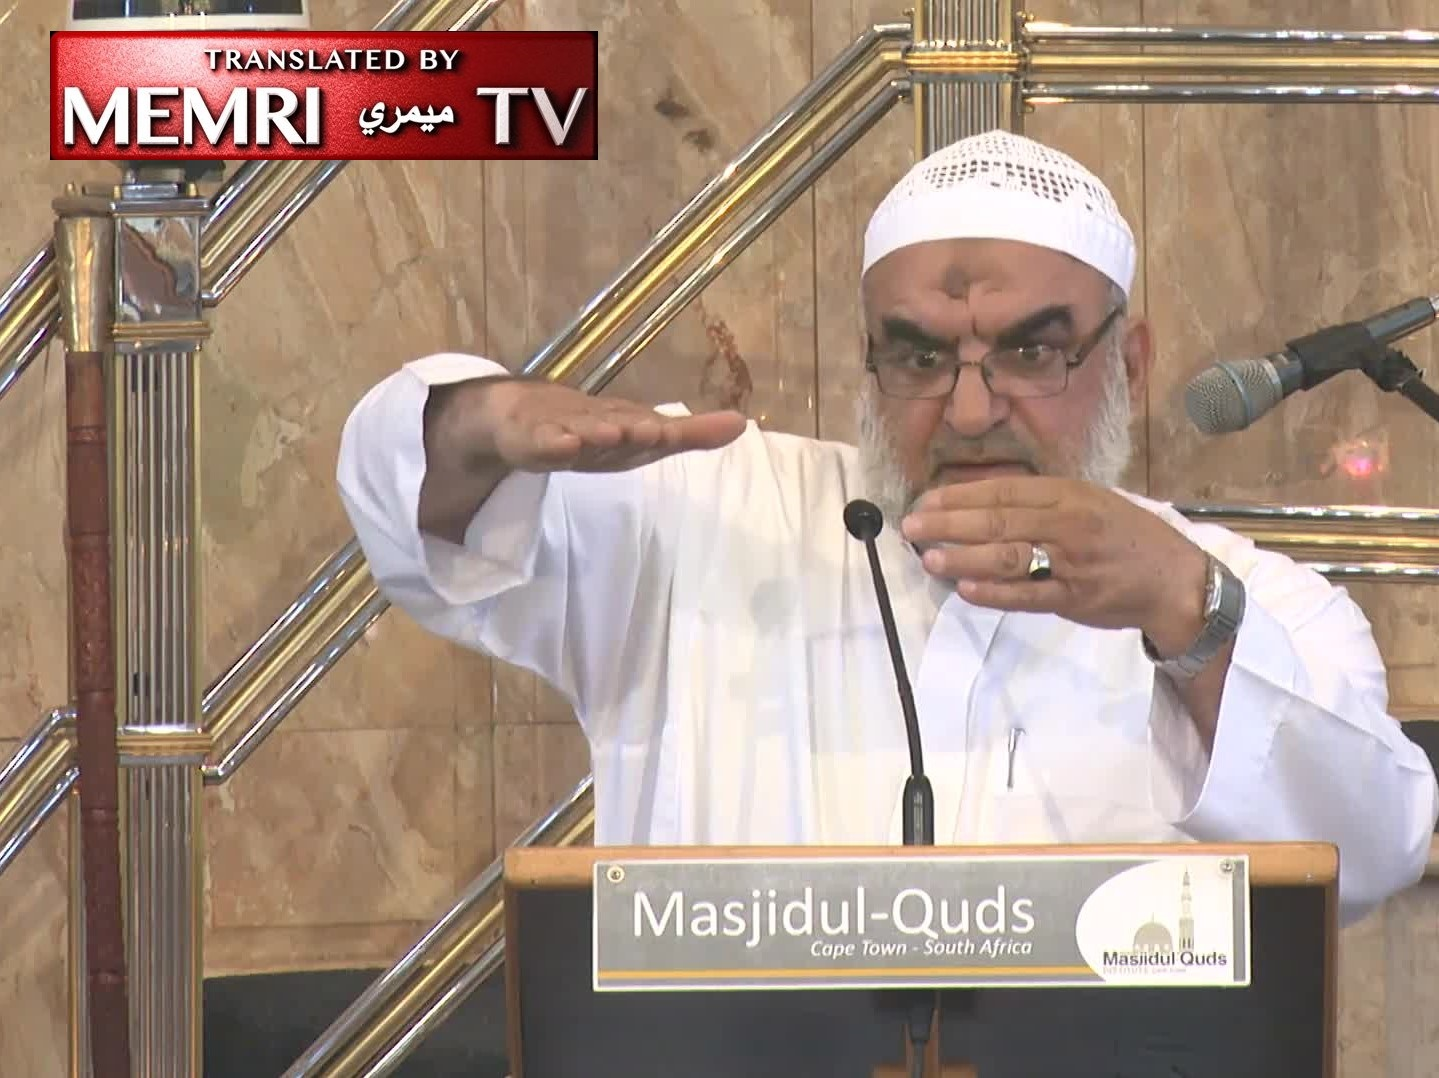 IUMS Sheikh Sameer Saeed to Cape Town Mosque Congregation: You Will Be the Muslim Army to Protect Jerusalem; We Will Fight the Jews and Christians in the End Times